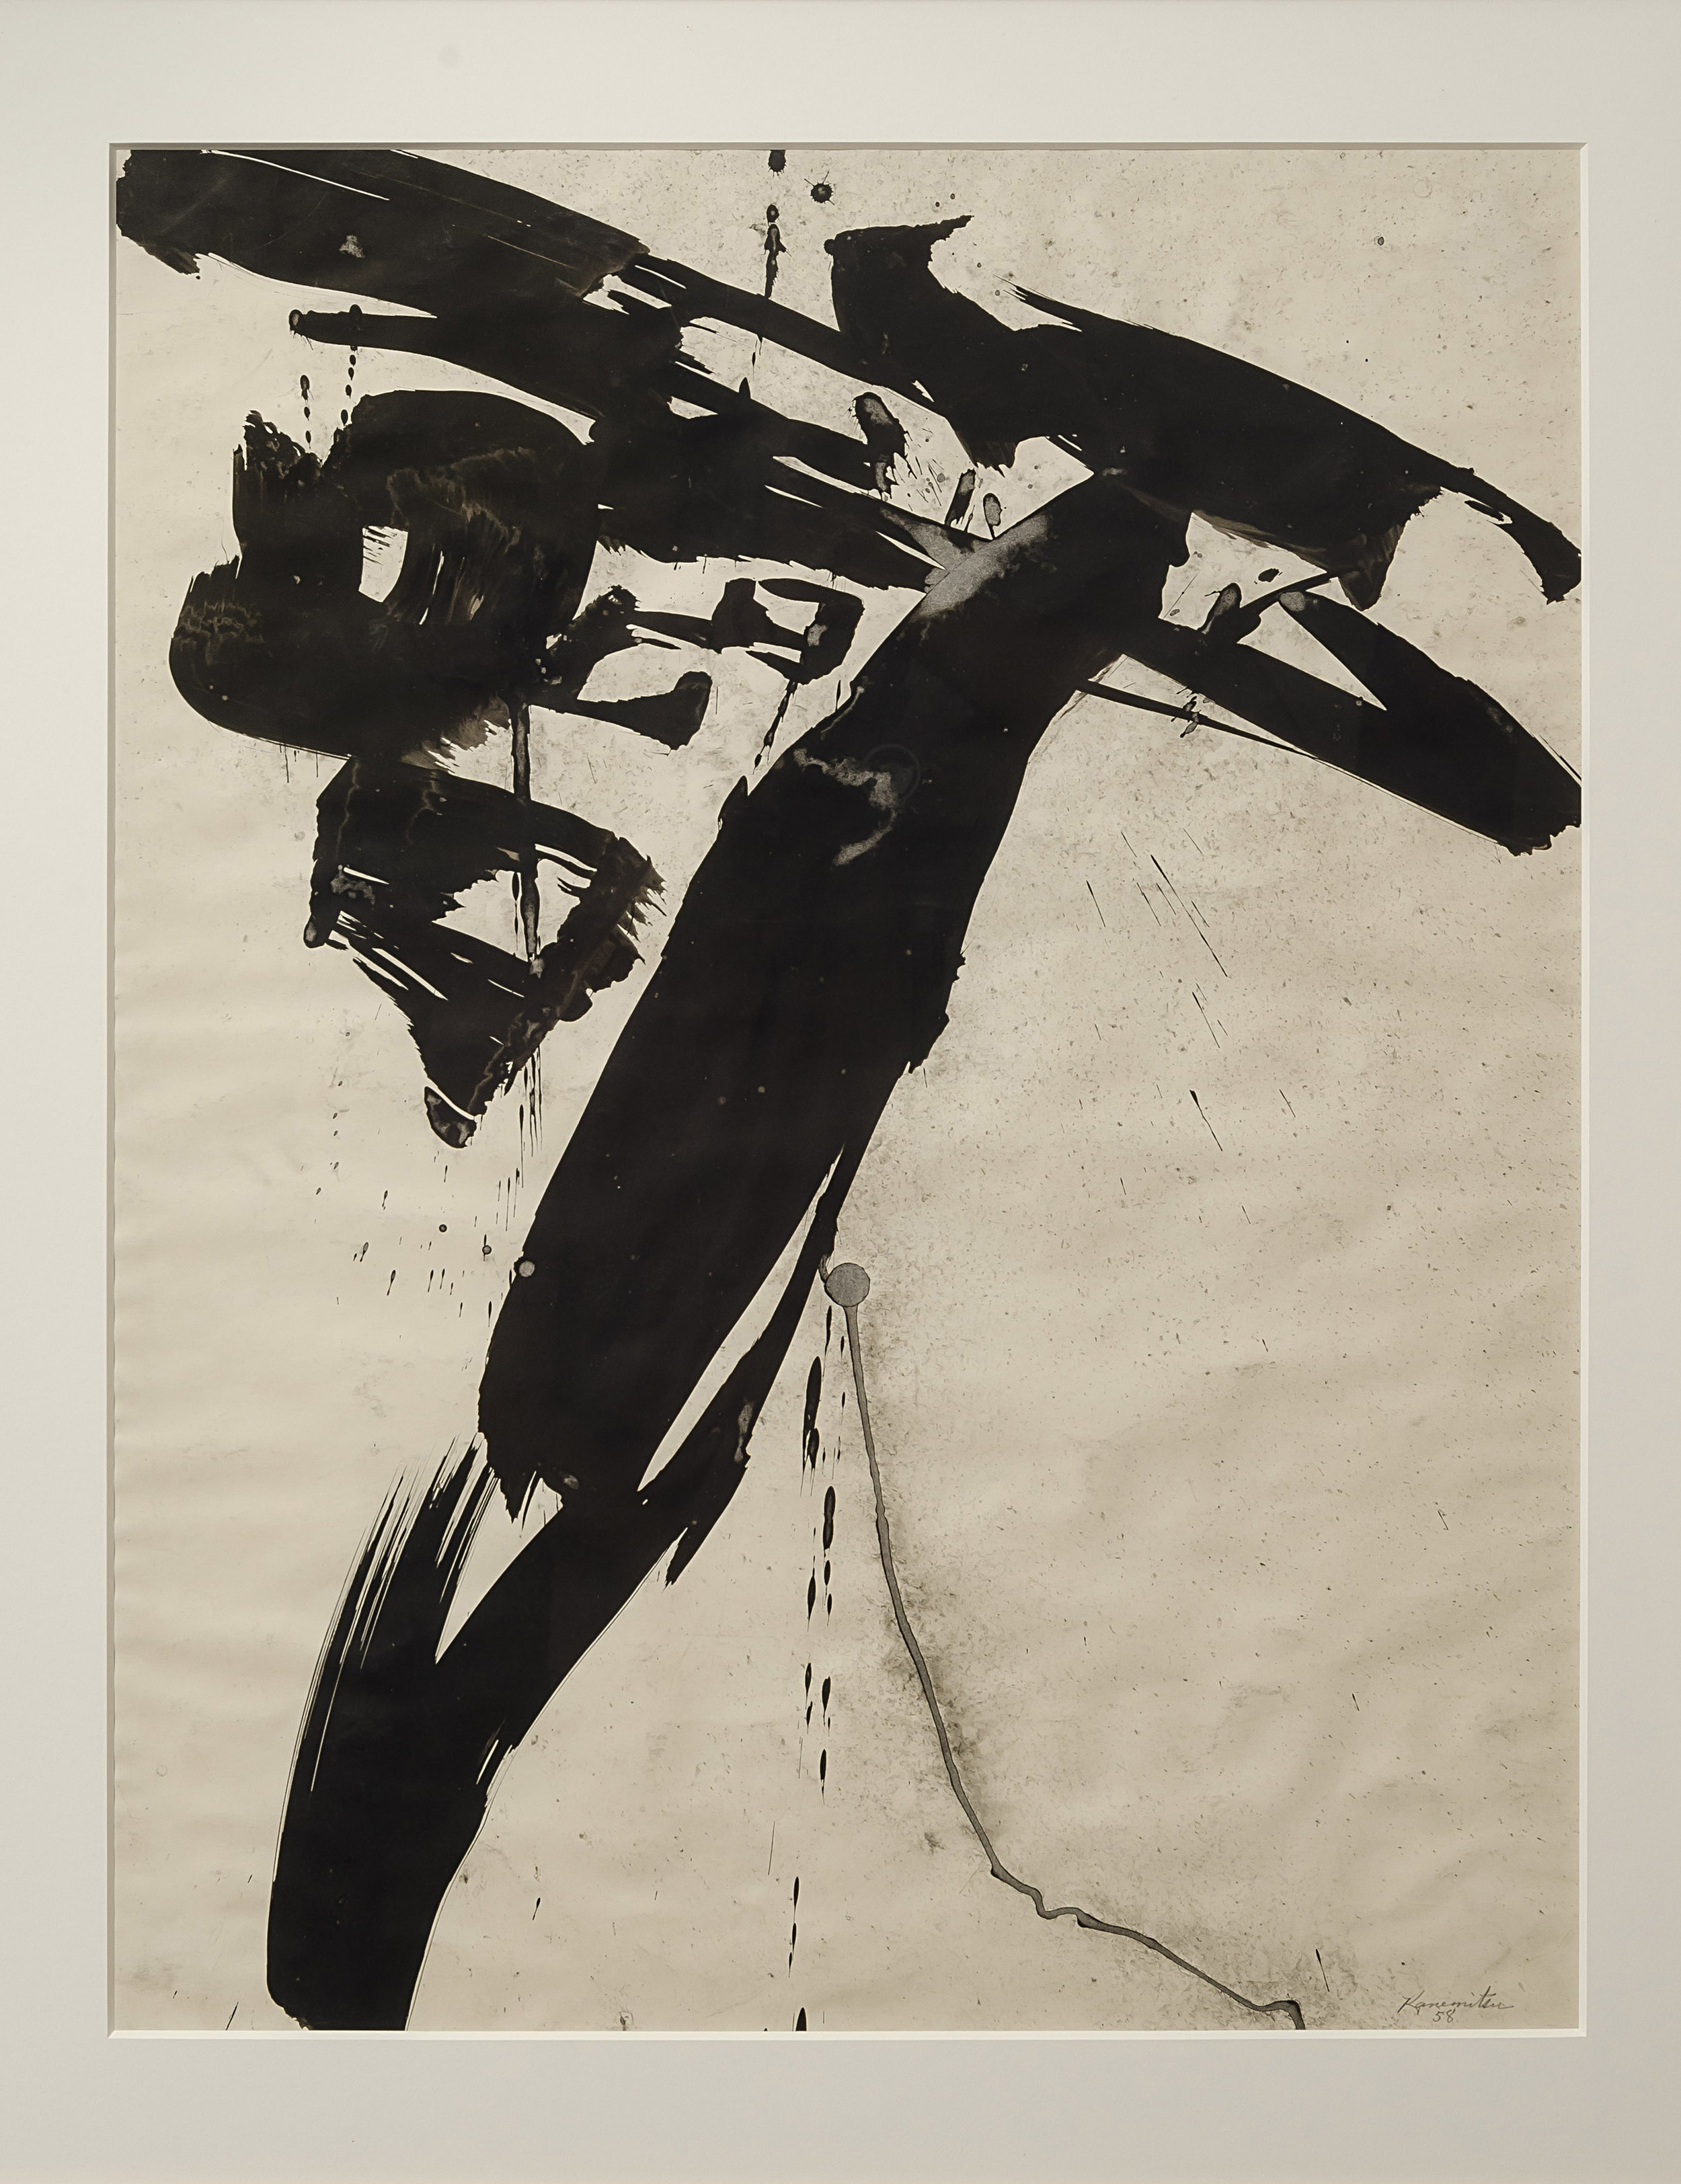 Cat , 1958 sumi ink on paper 25 x 19 5/8 inches; 63.5 x 49.8 centimeters